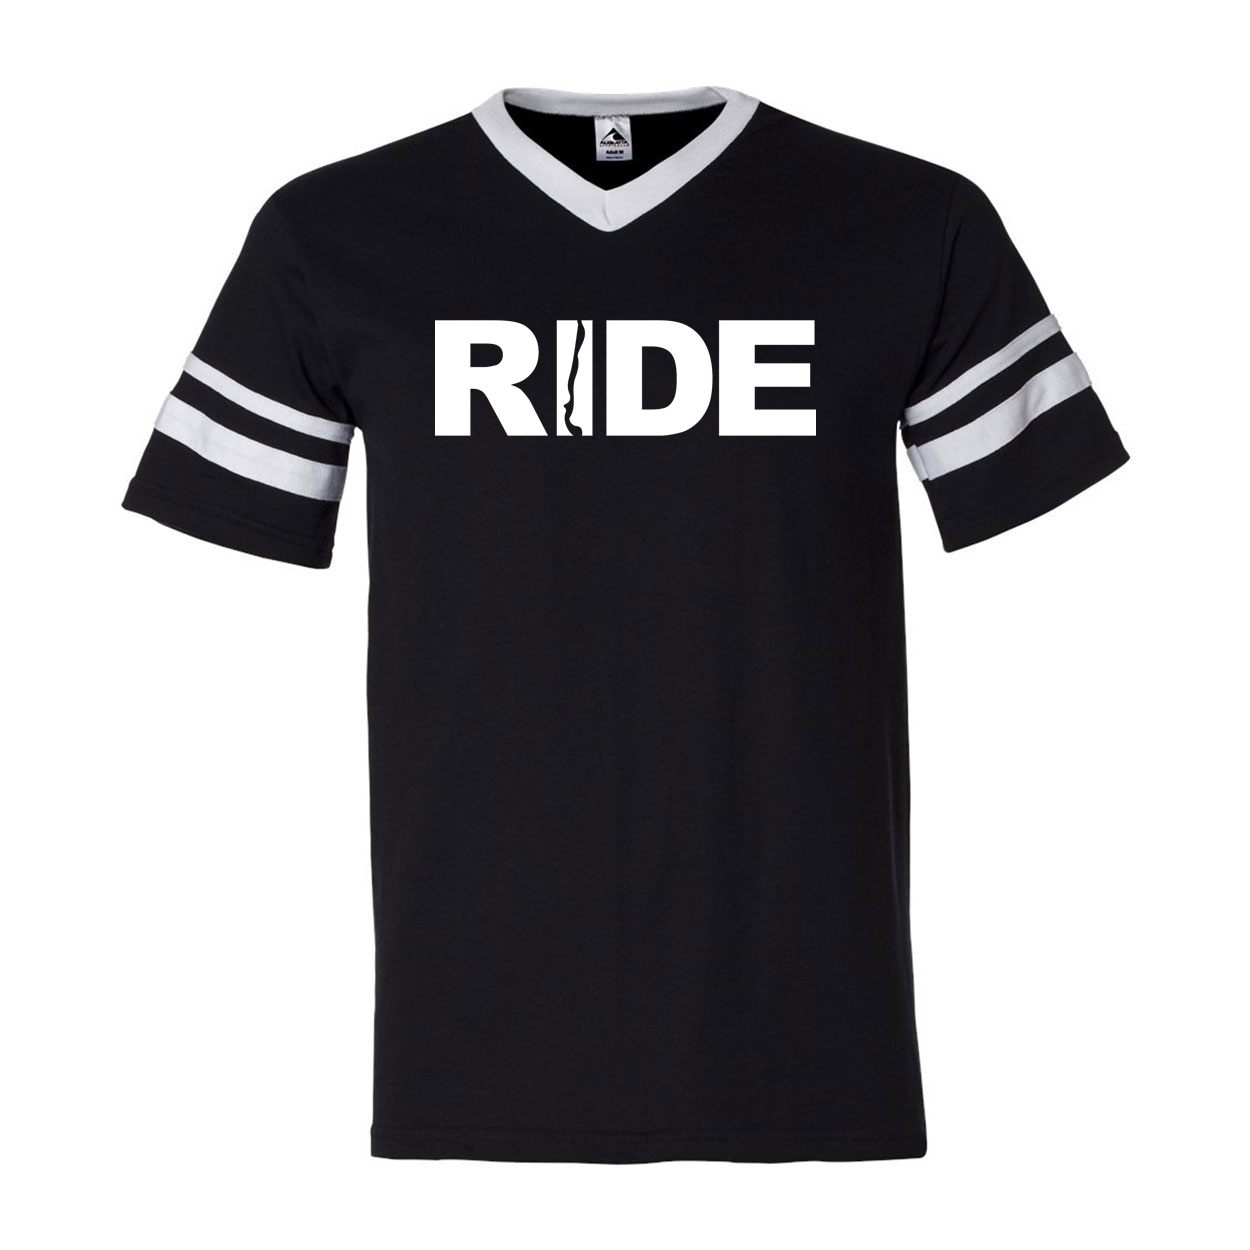 Ride Chile Classic Premium Striped Jersey T-Shirt Black/White (White Logo)